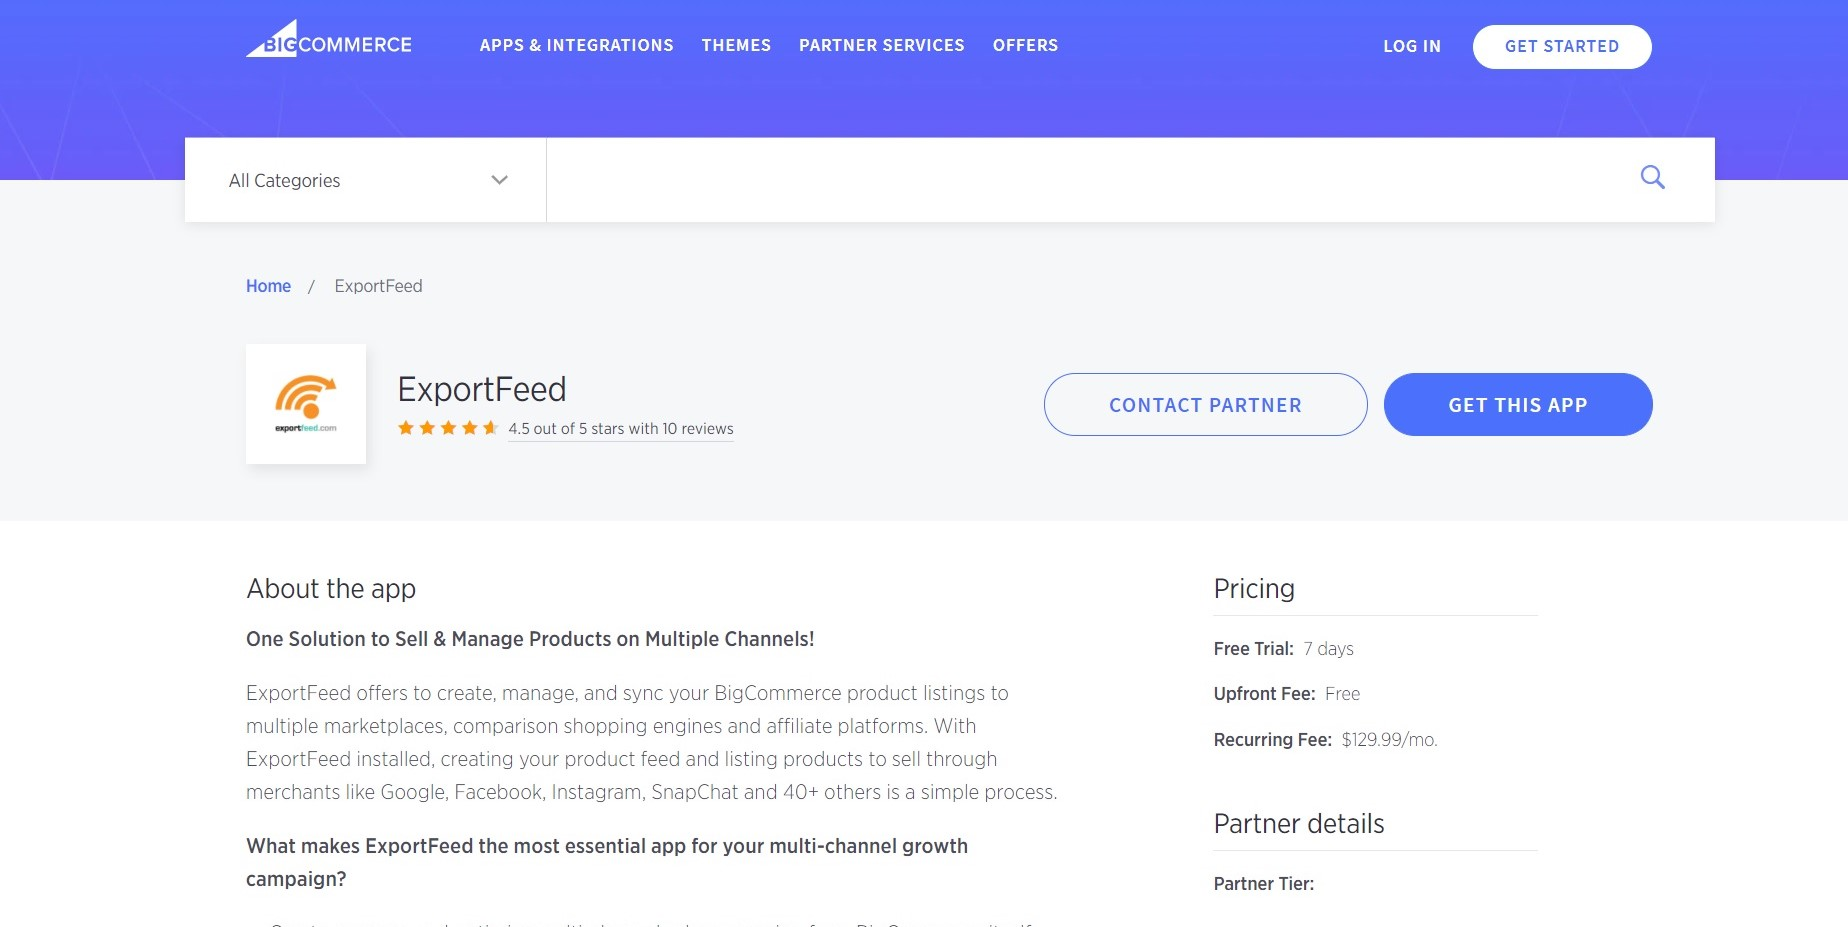 Download ExportFeed from the BigCommerce App Store